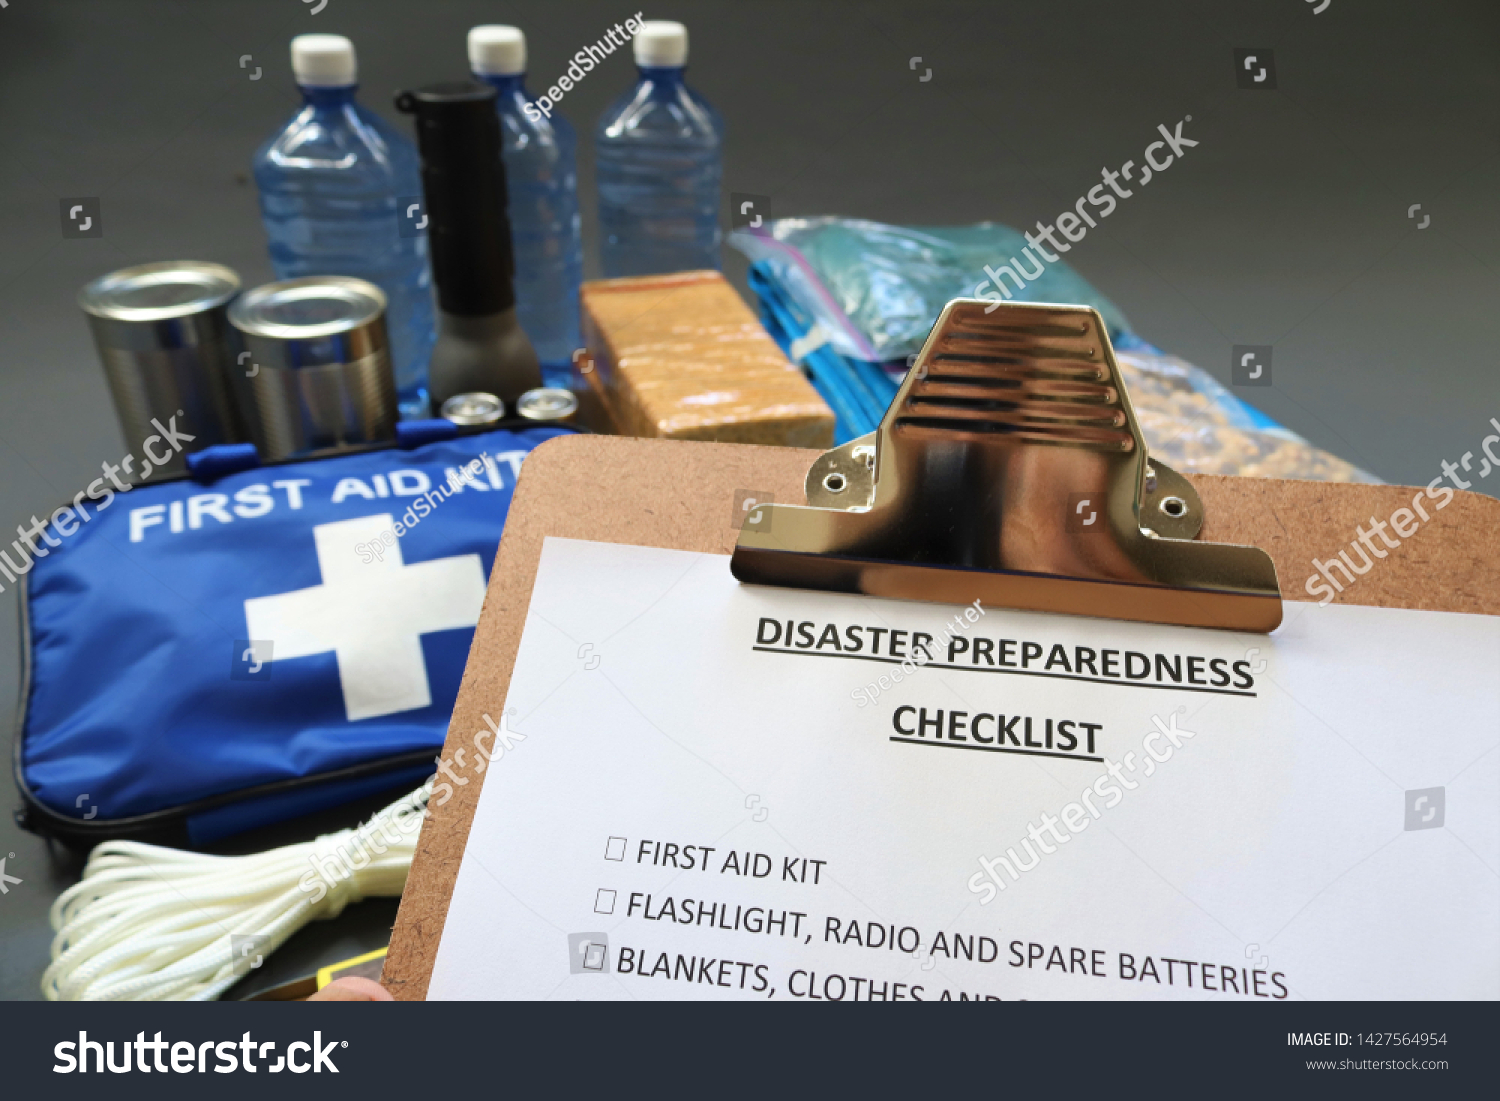 Disaster preparedness checklist on a clipboard with disaster relief items in the background.Such items would include a first aid kit,flashlight,tinned food,water,batteries and shelter.Disaster plan. #1427564954